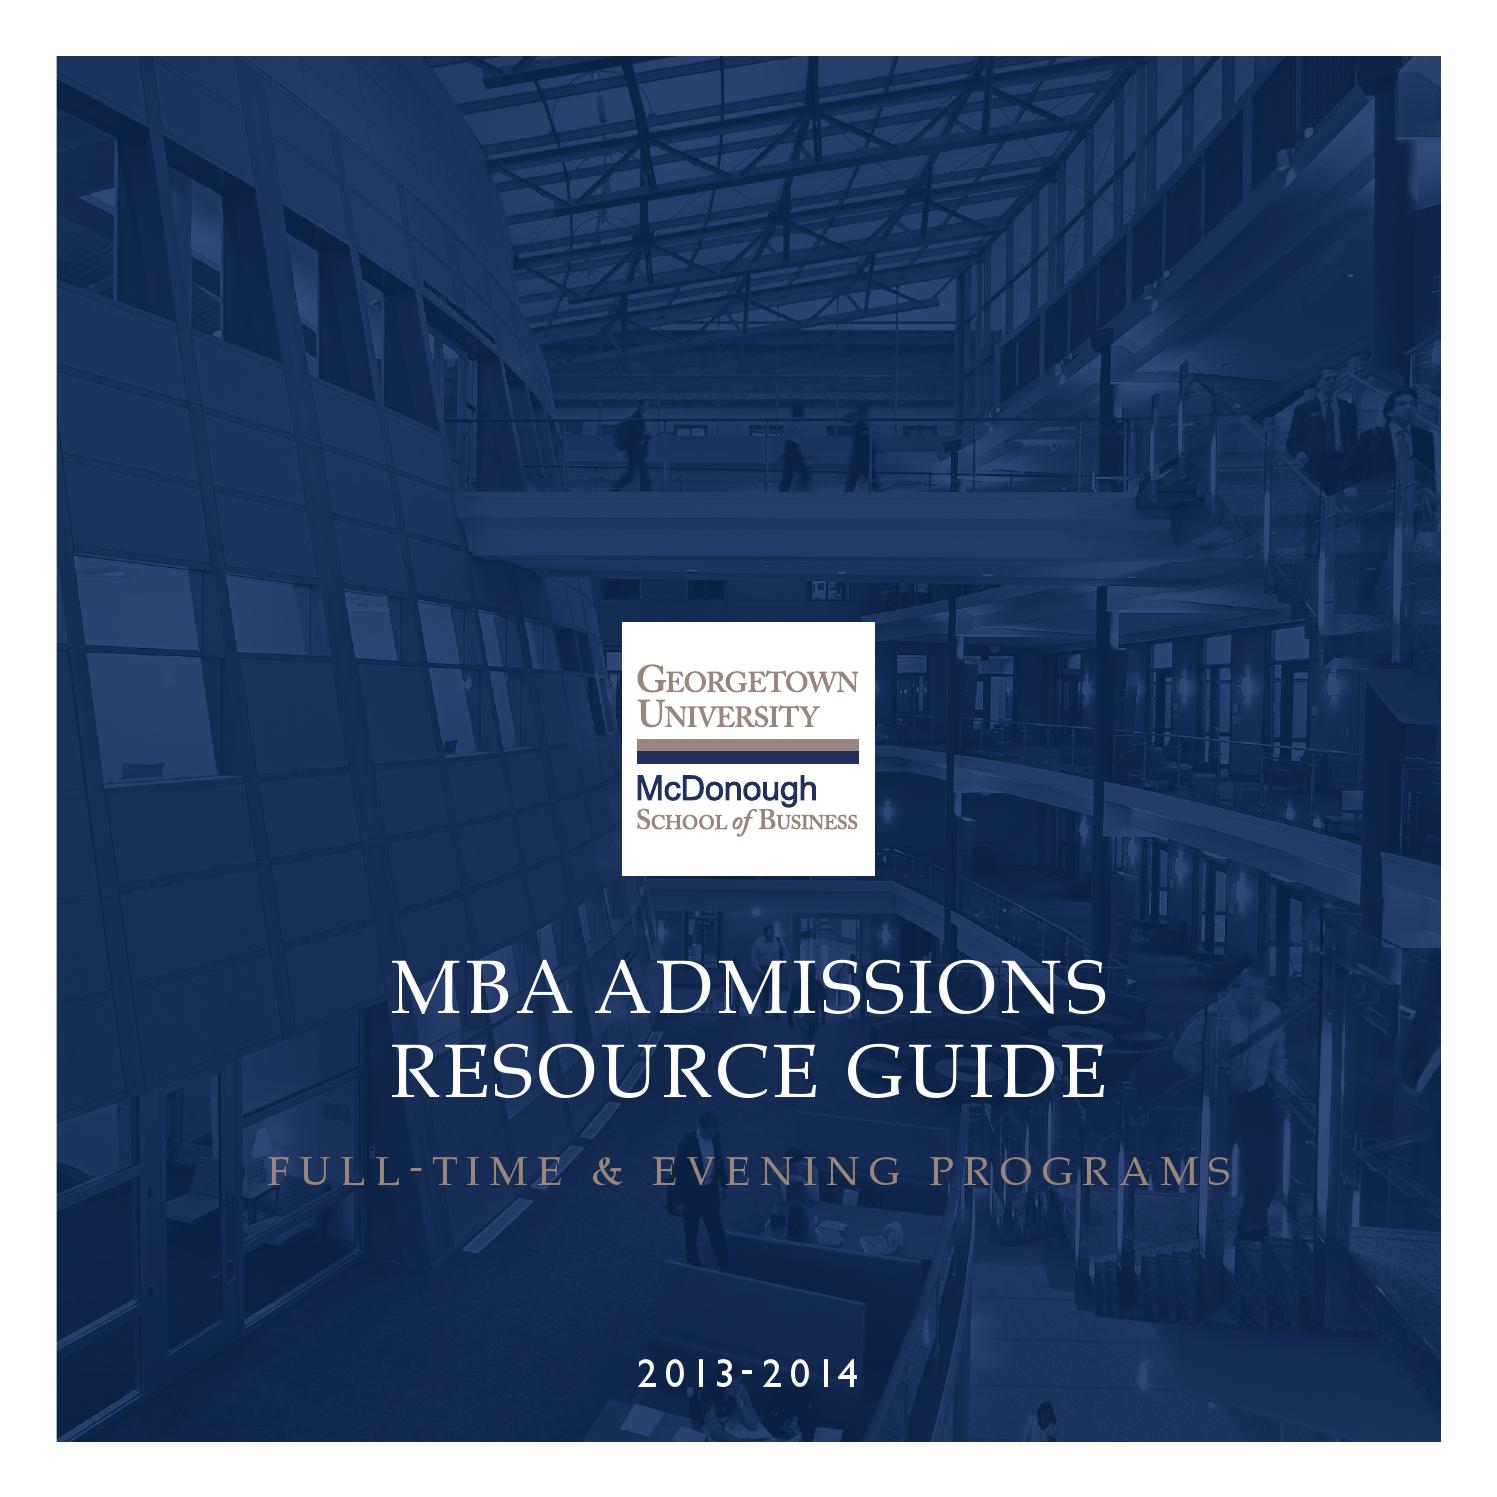 mba admissions resource guide by georgetown university mba admissions resource guide 2013 by georgetown university mcdonough school of business issuu